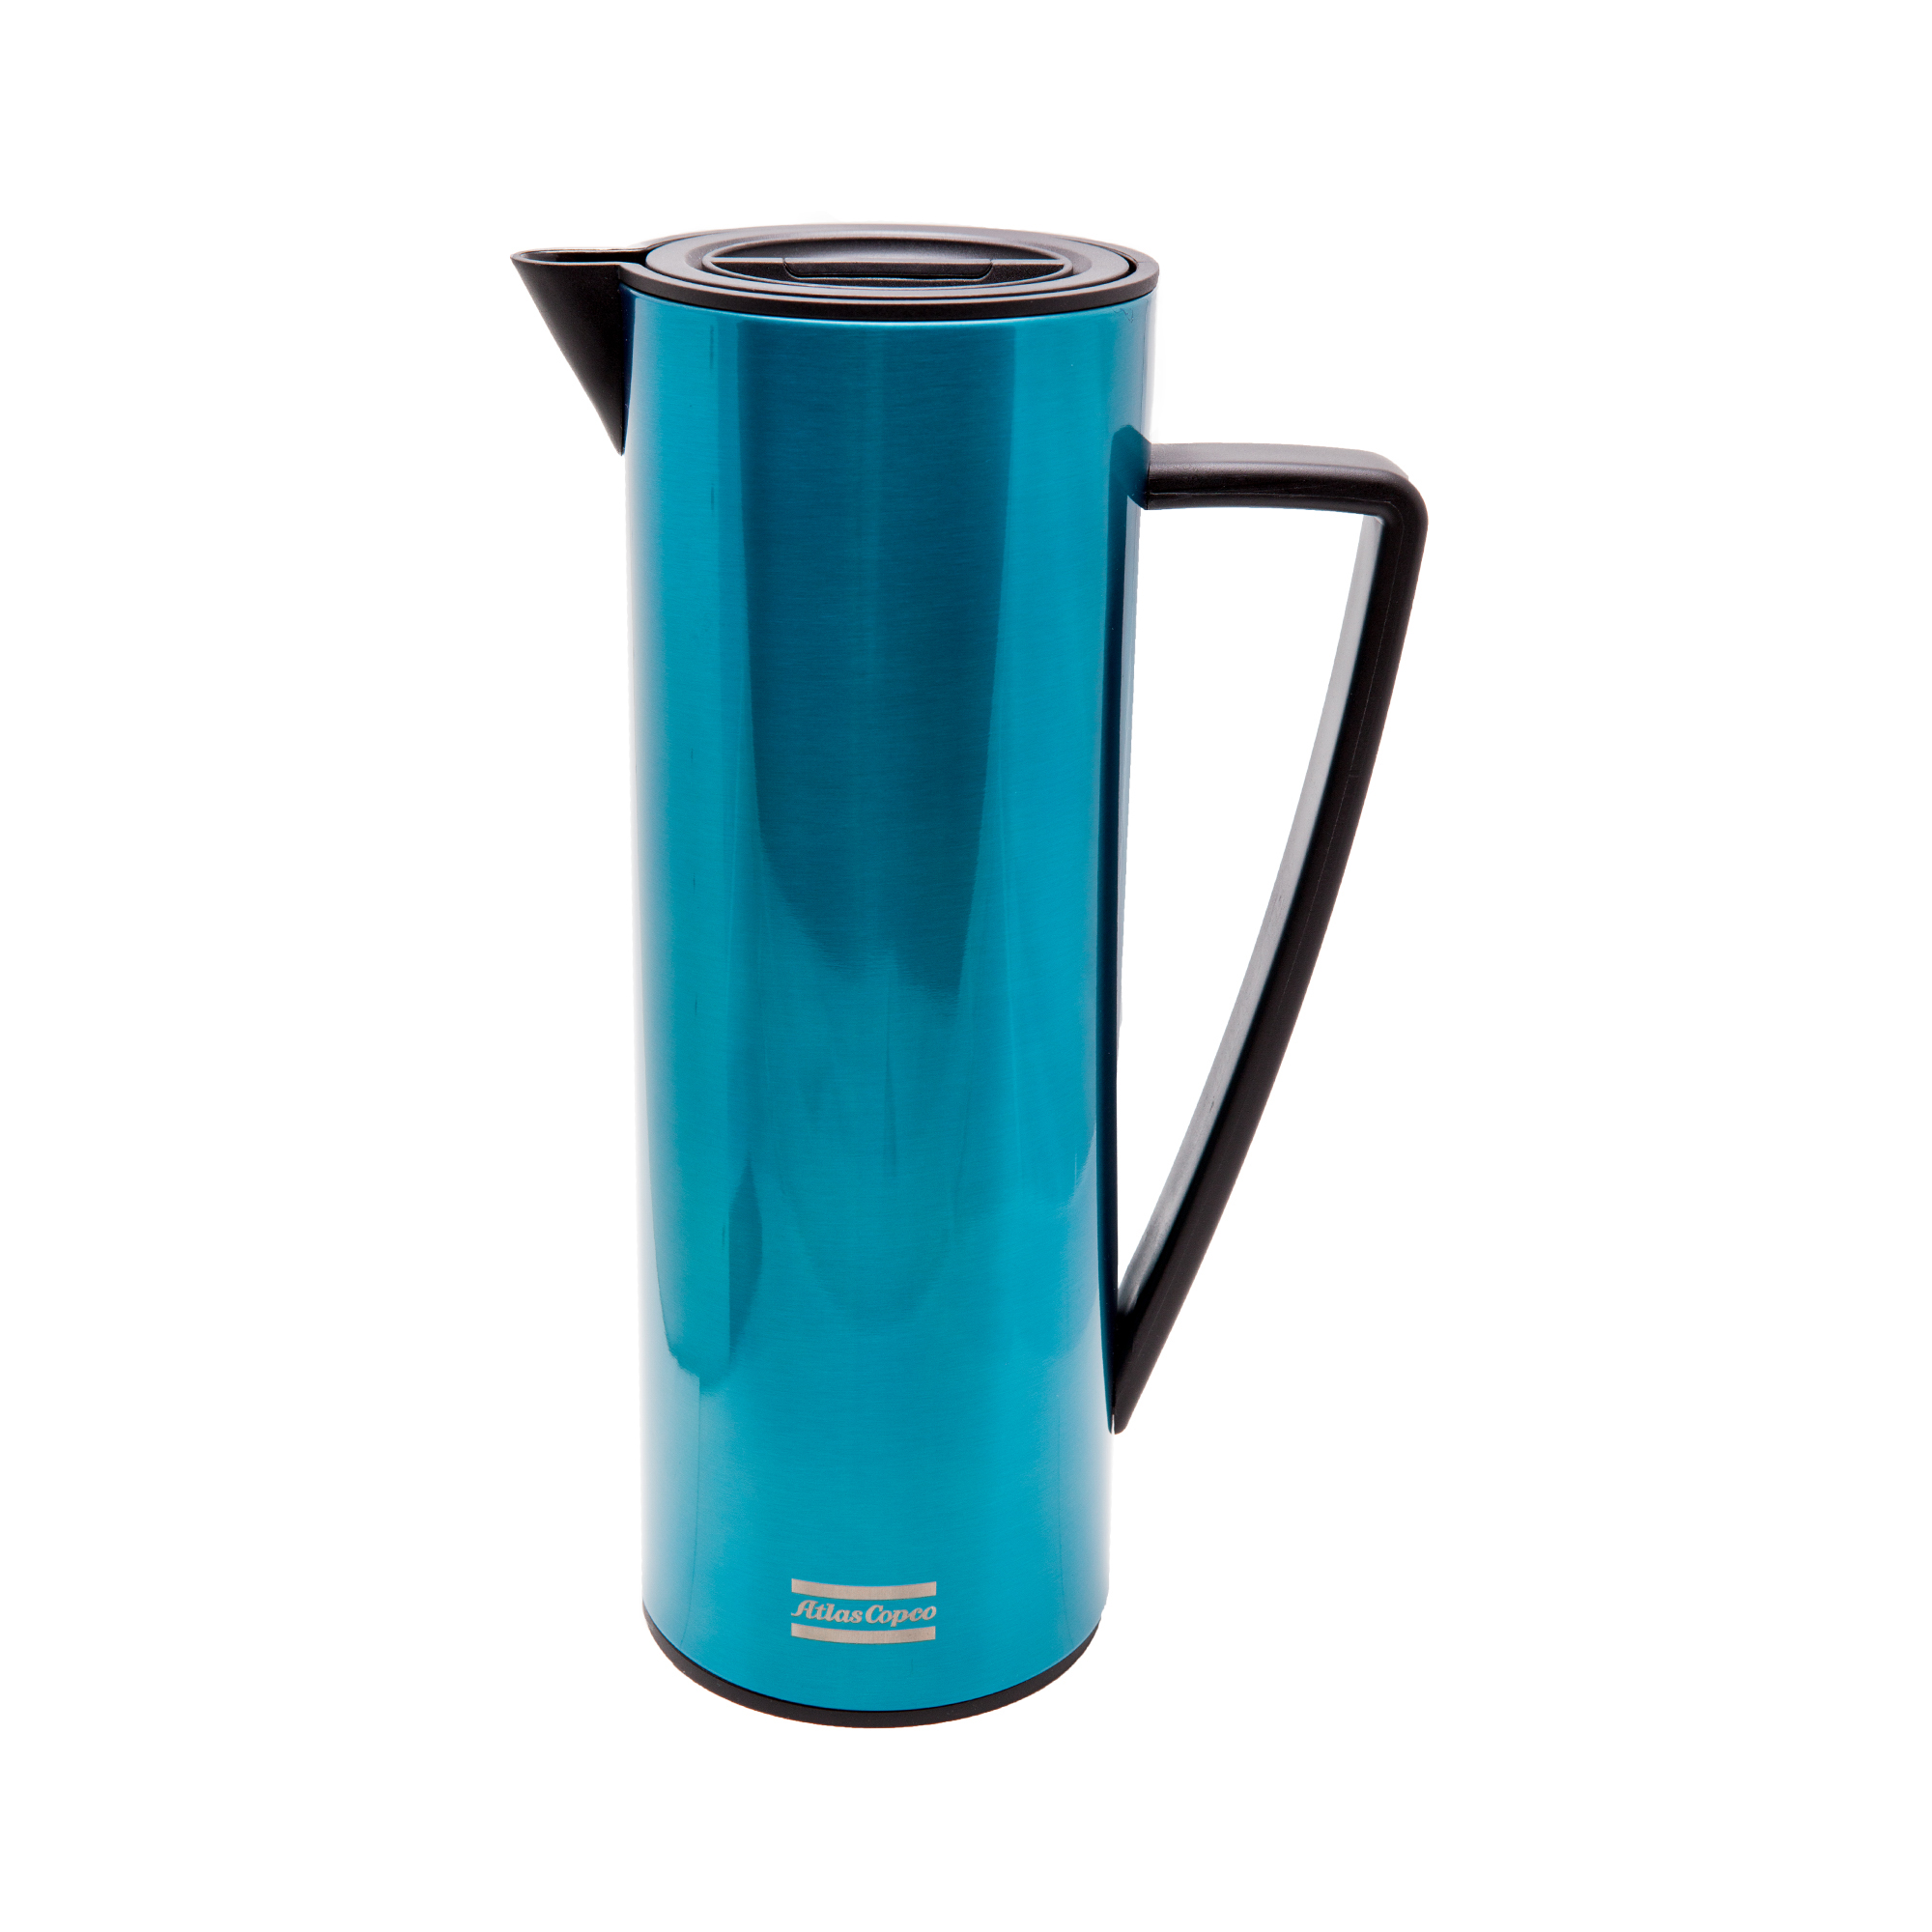 This quality thermos flask communicates clean Scandinavian design and excellent functionality. 